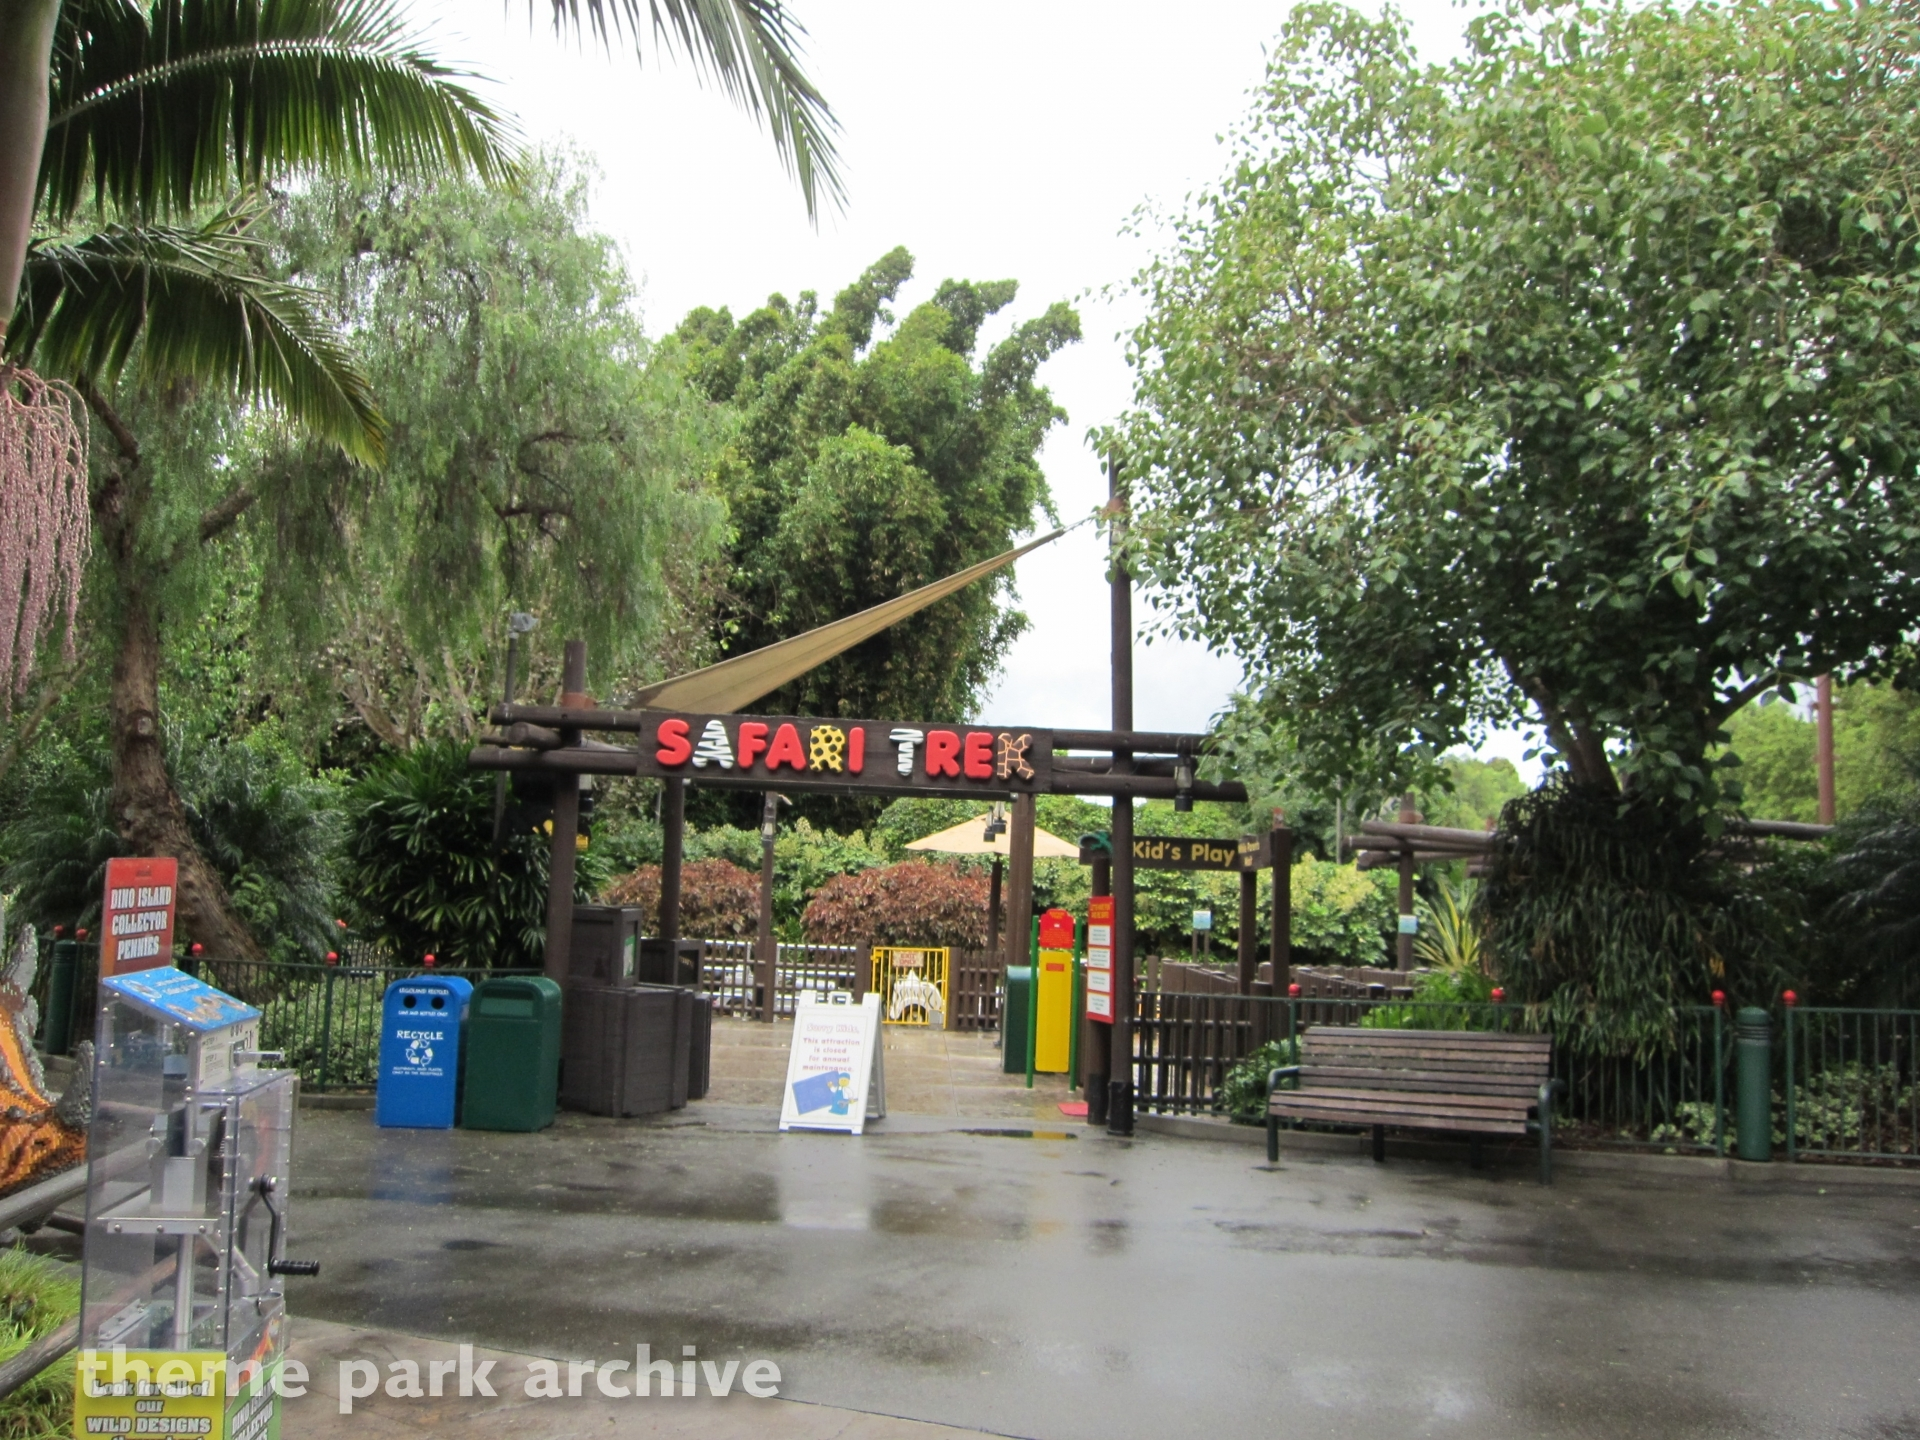 Safari Trek at LEGOLAND California | Theme Park Archive